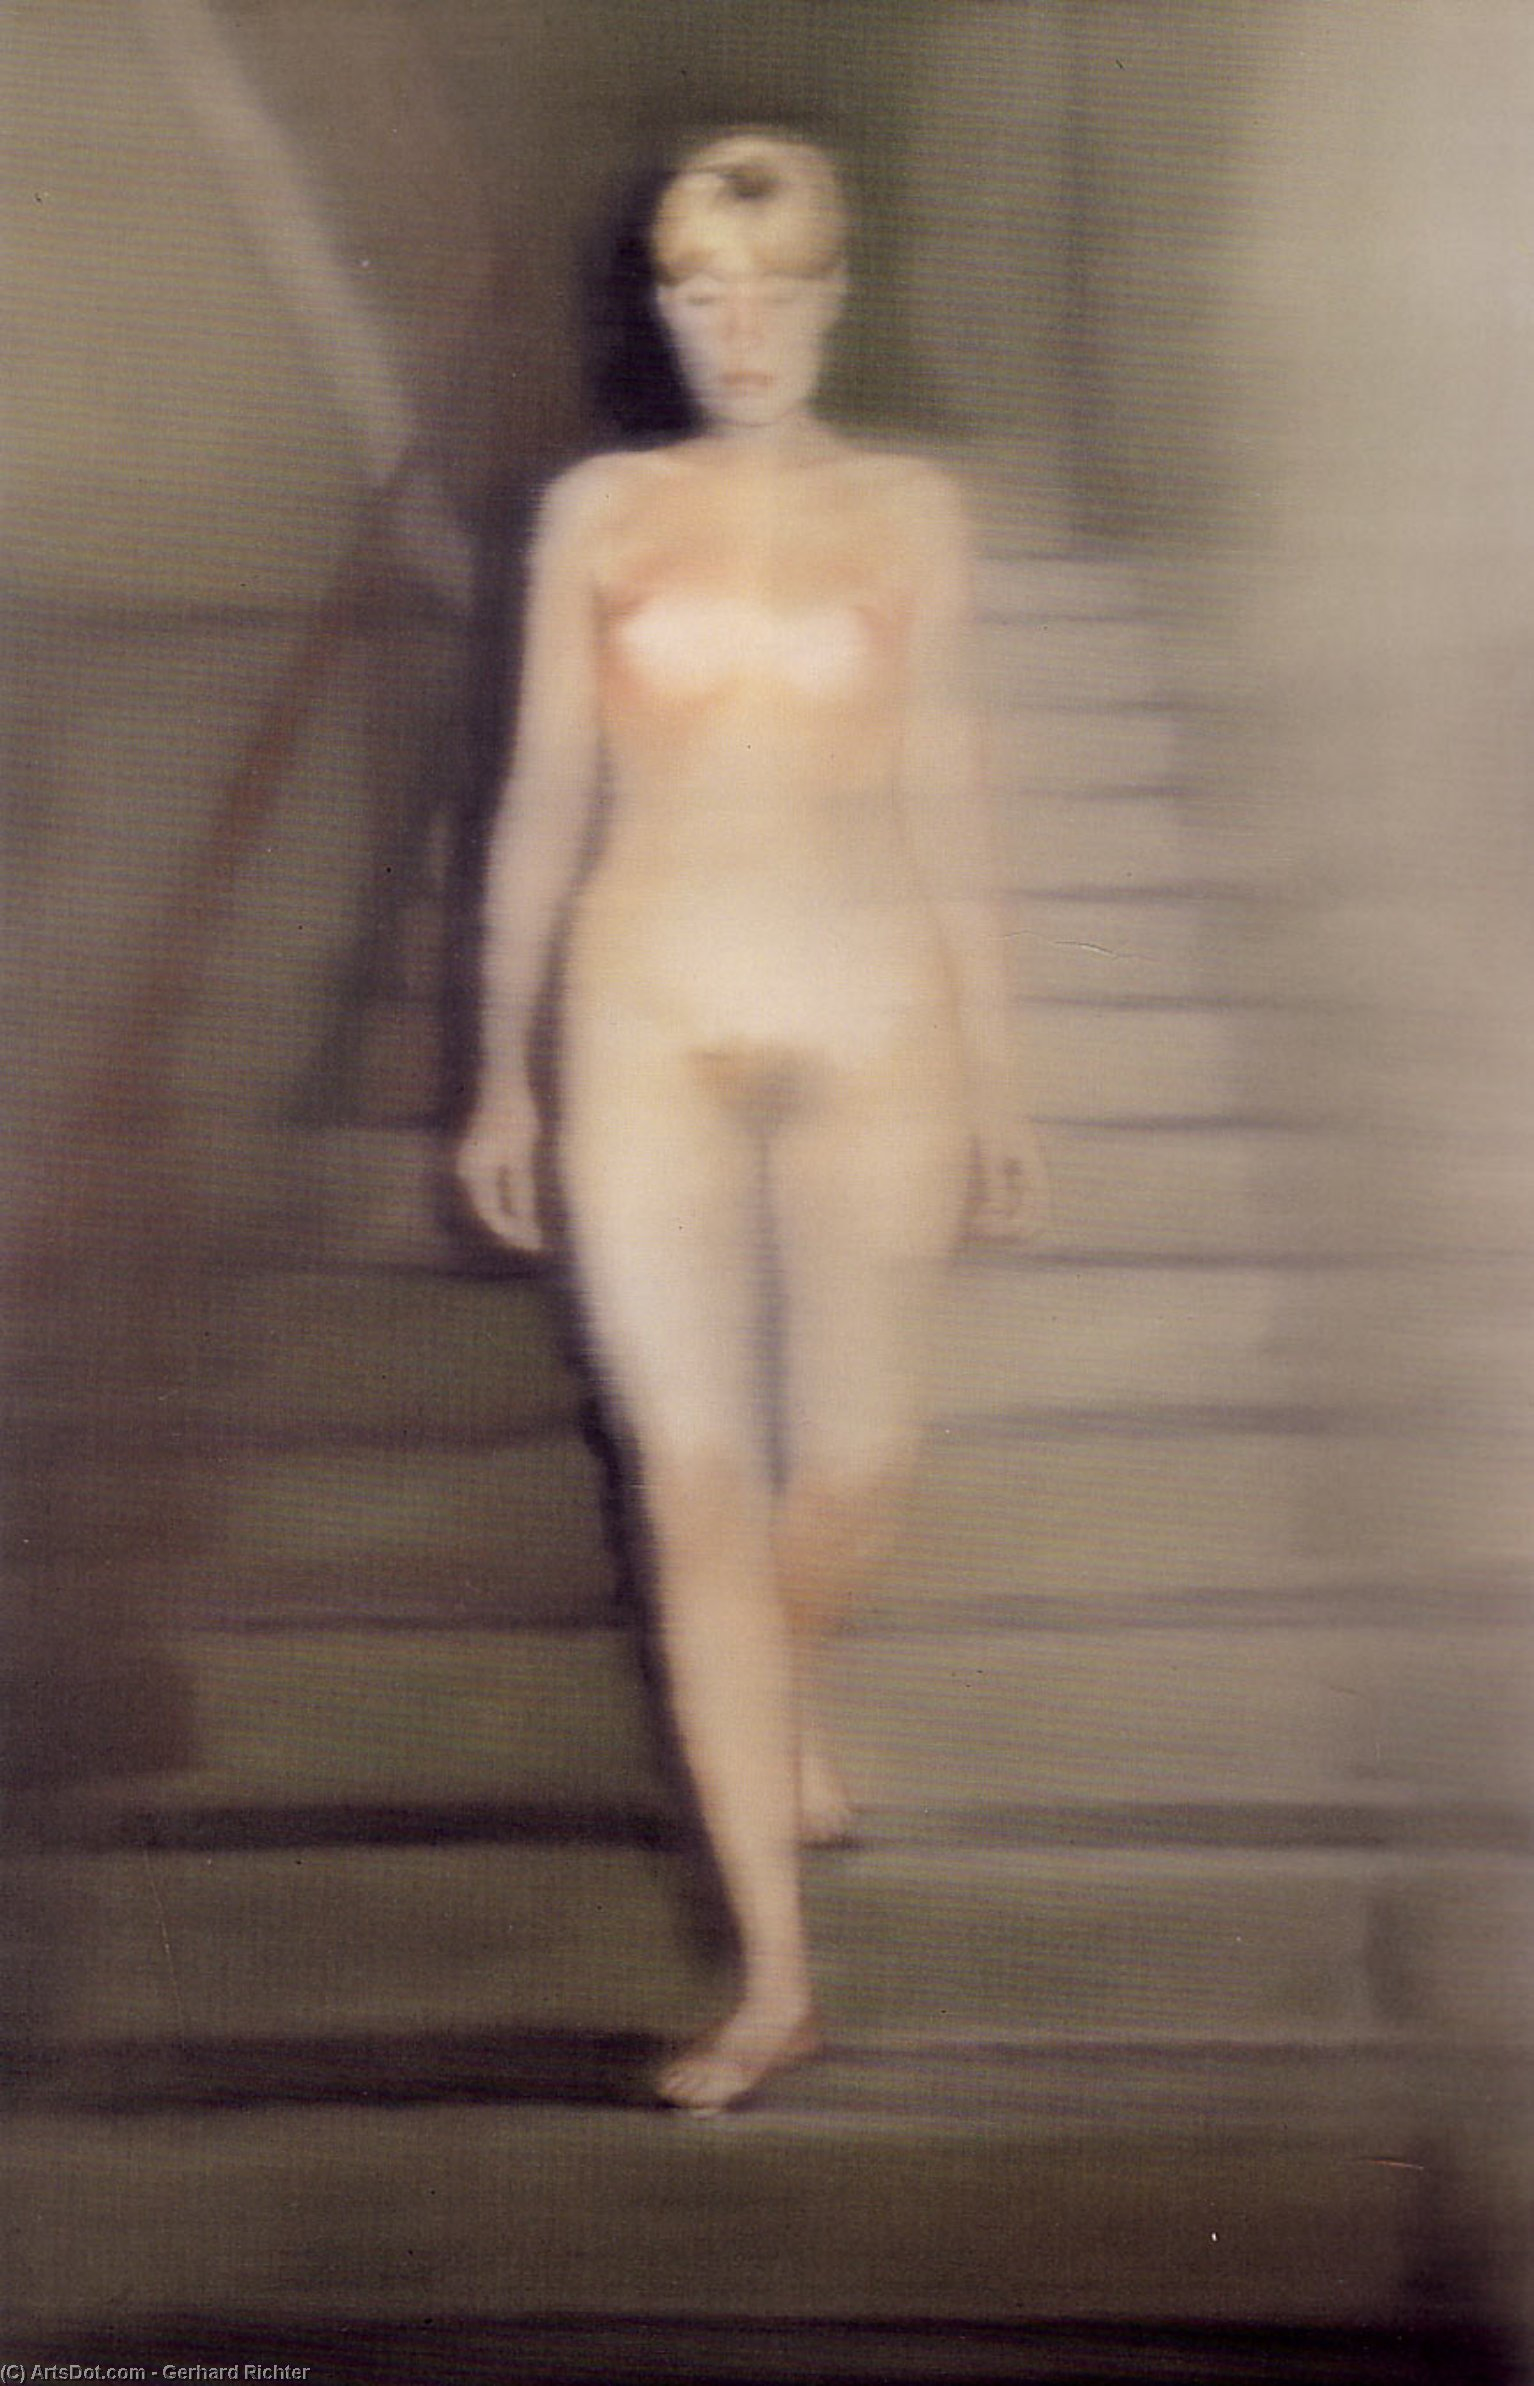 Ema, 1992 by Gerhard Richter